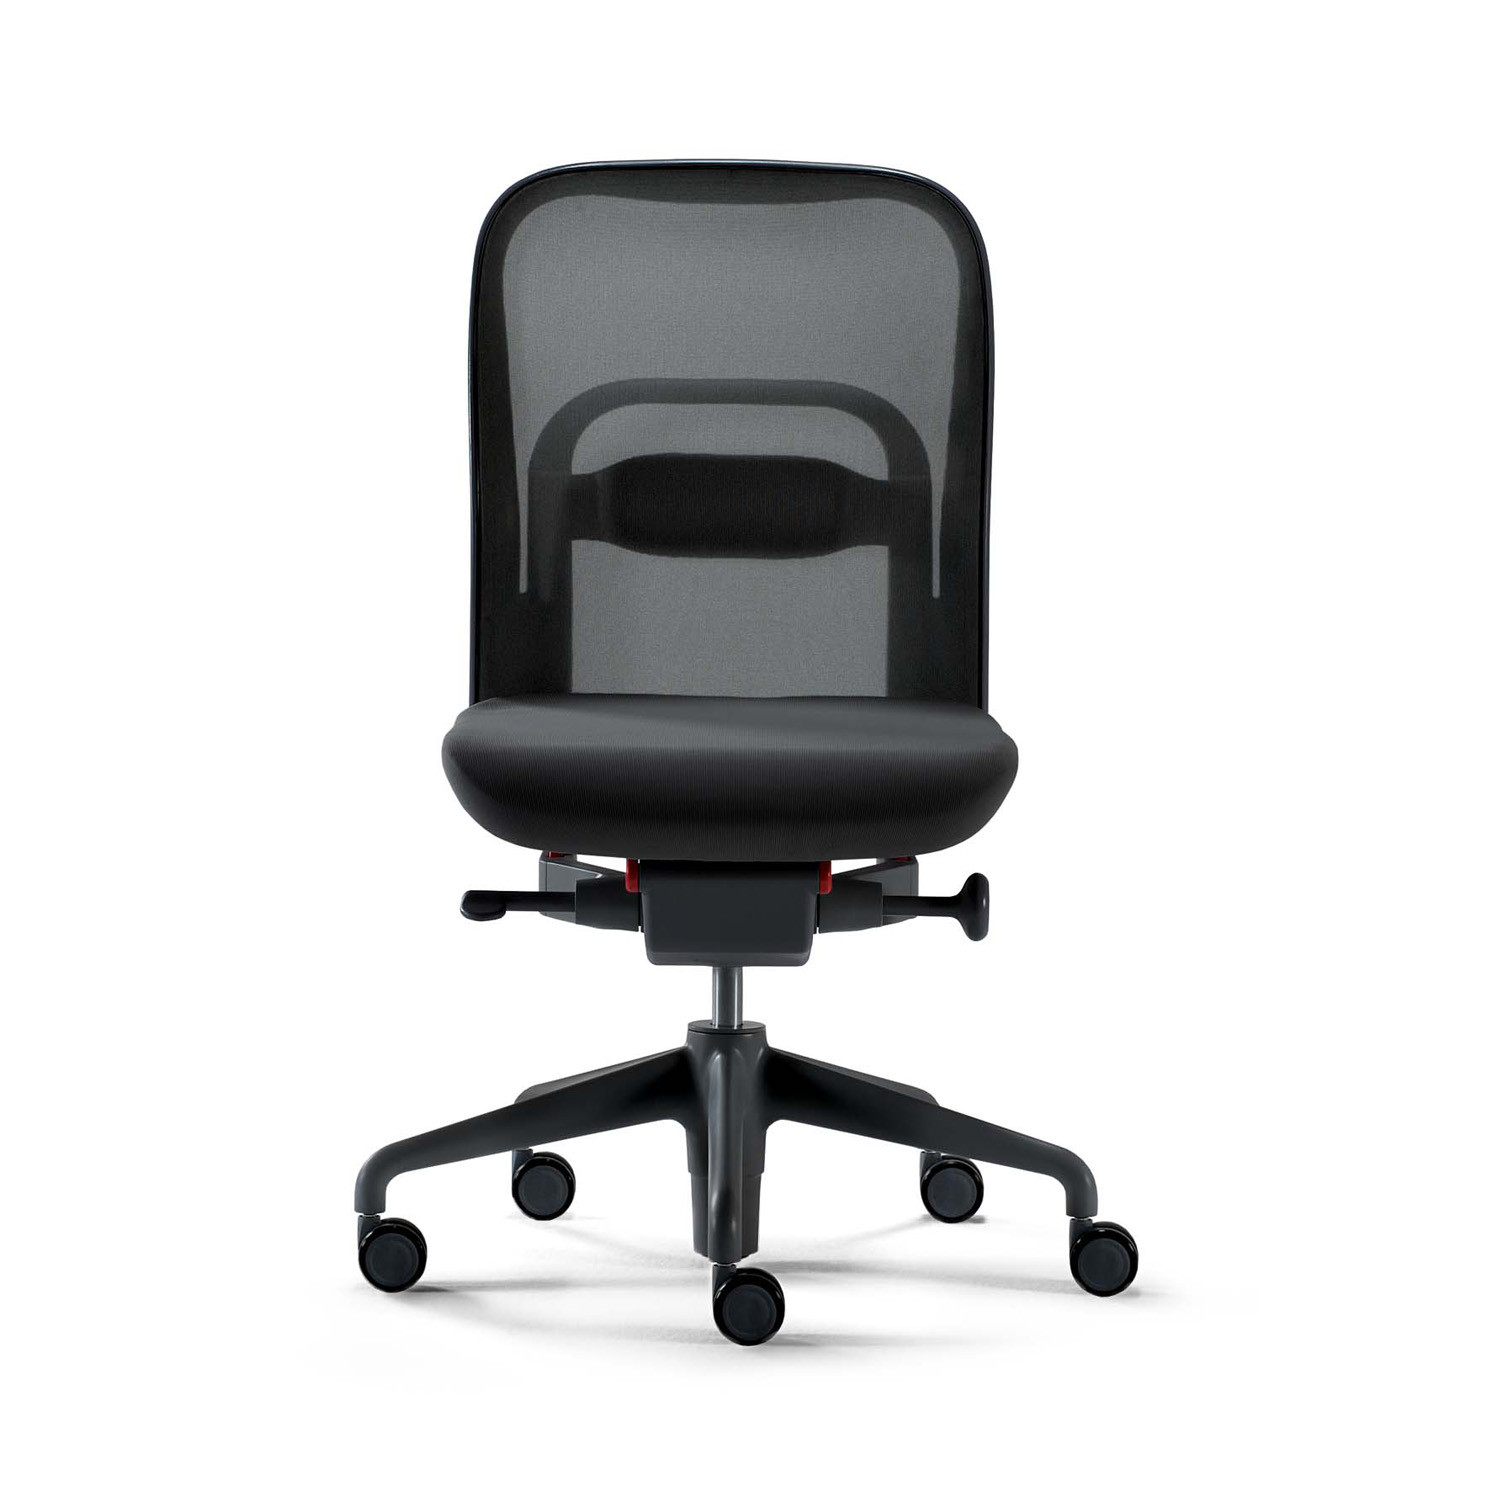 Norma Height Adjustable Office Chair